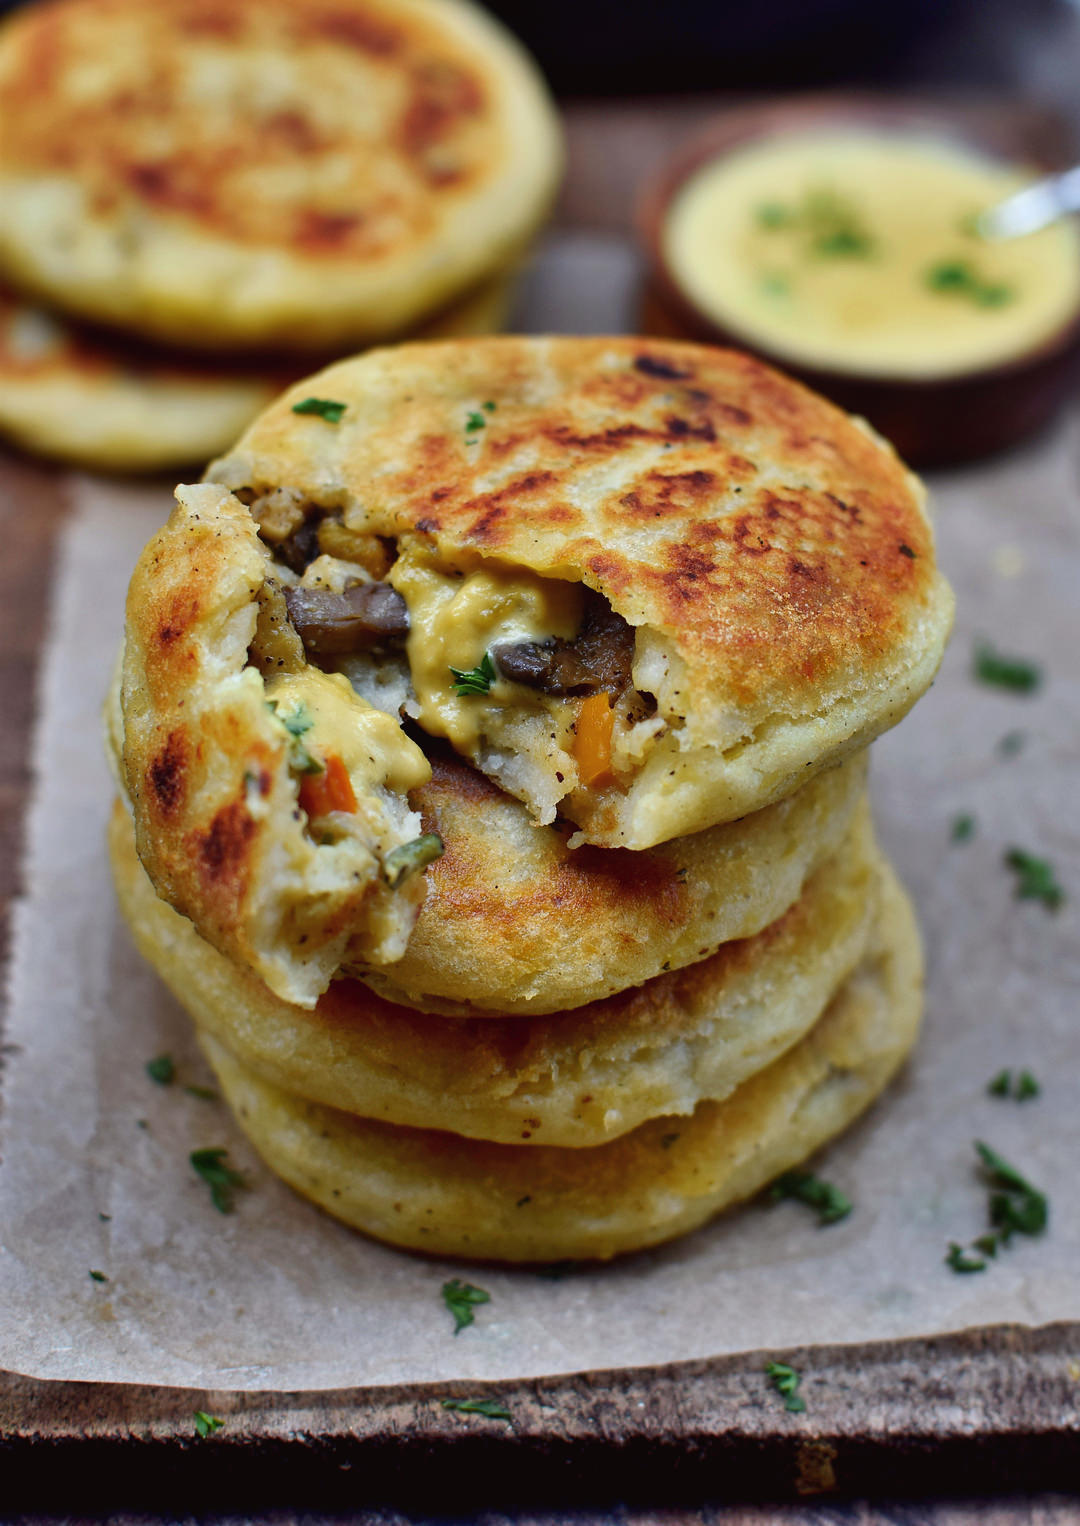 Stuffed potato cakes | vegan, gluten-free recipe